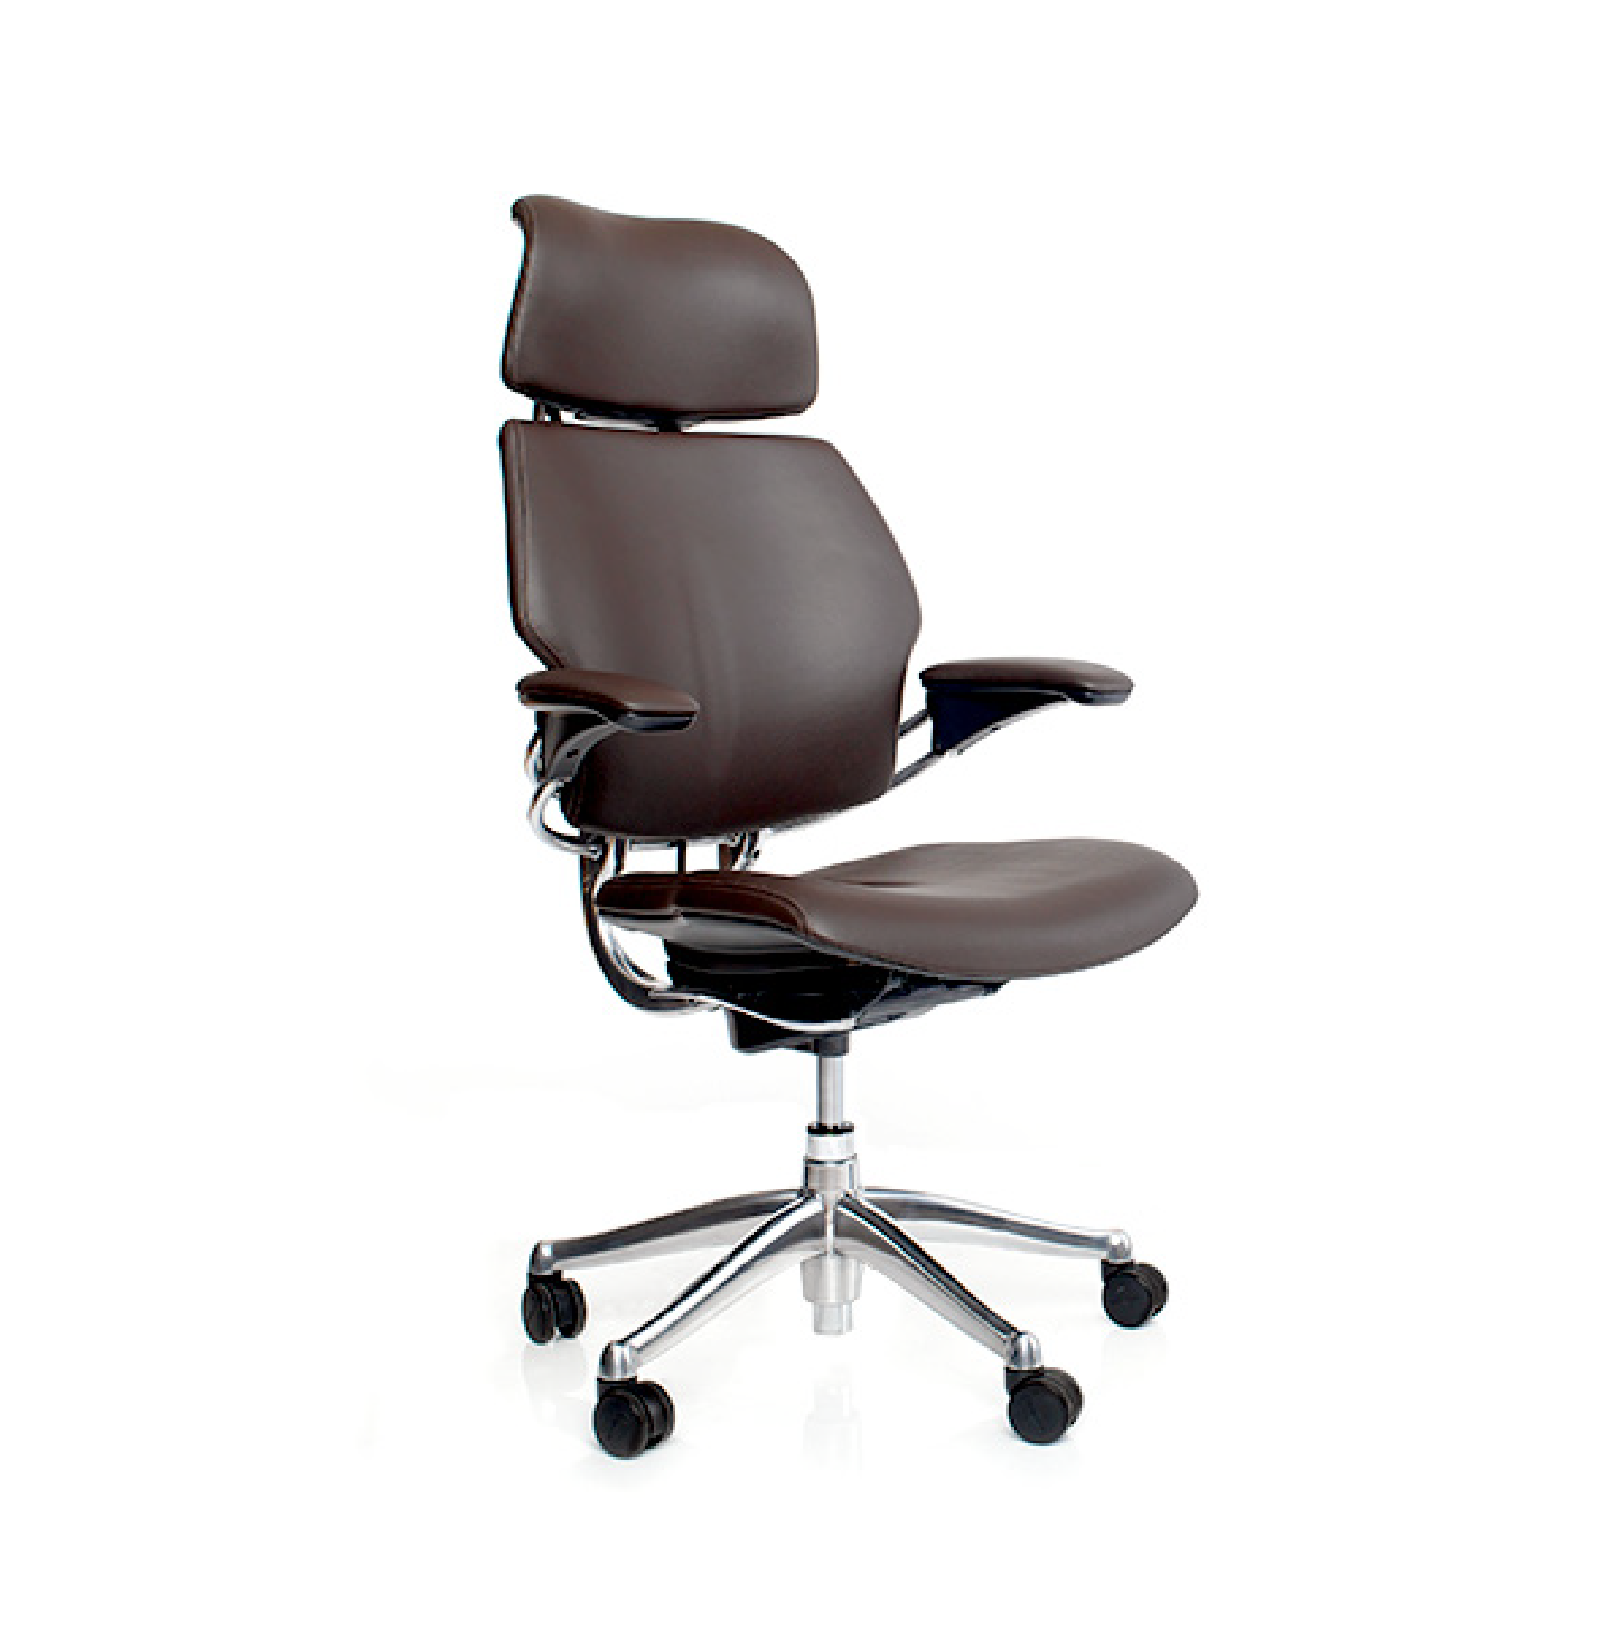 executive/conference   image courtesy of Humanscale